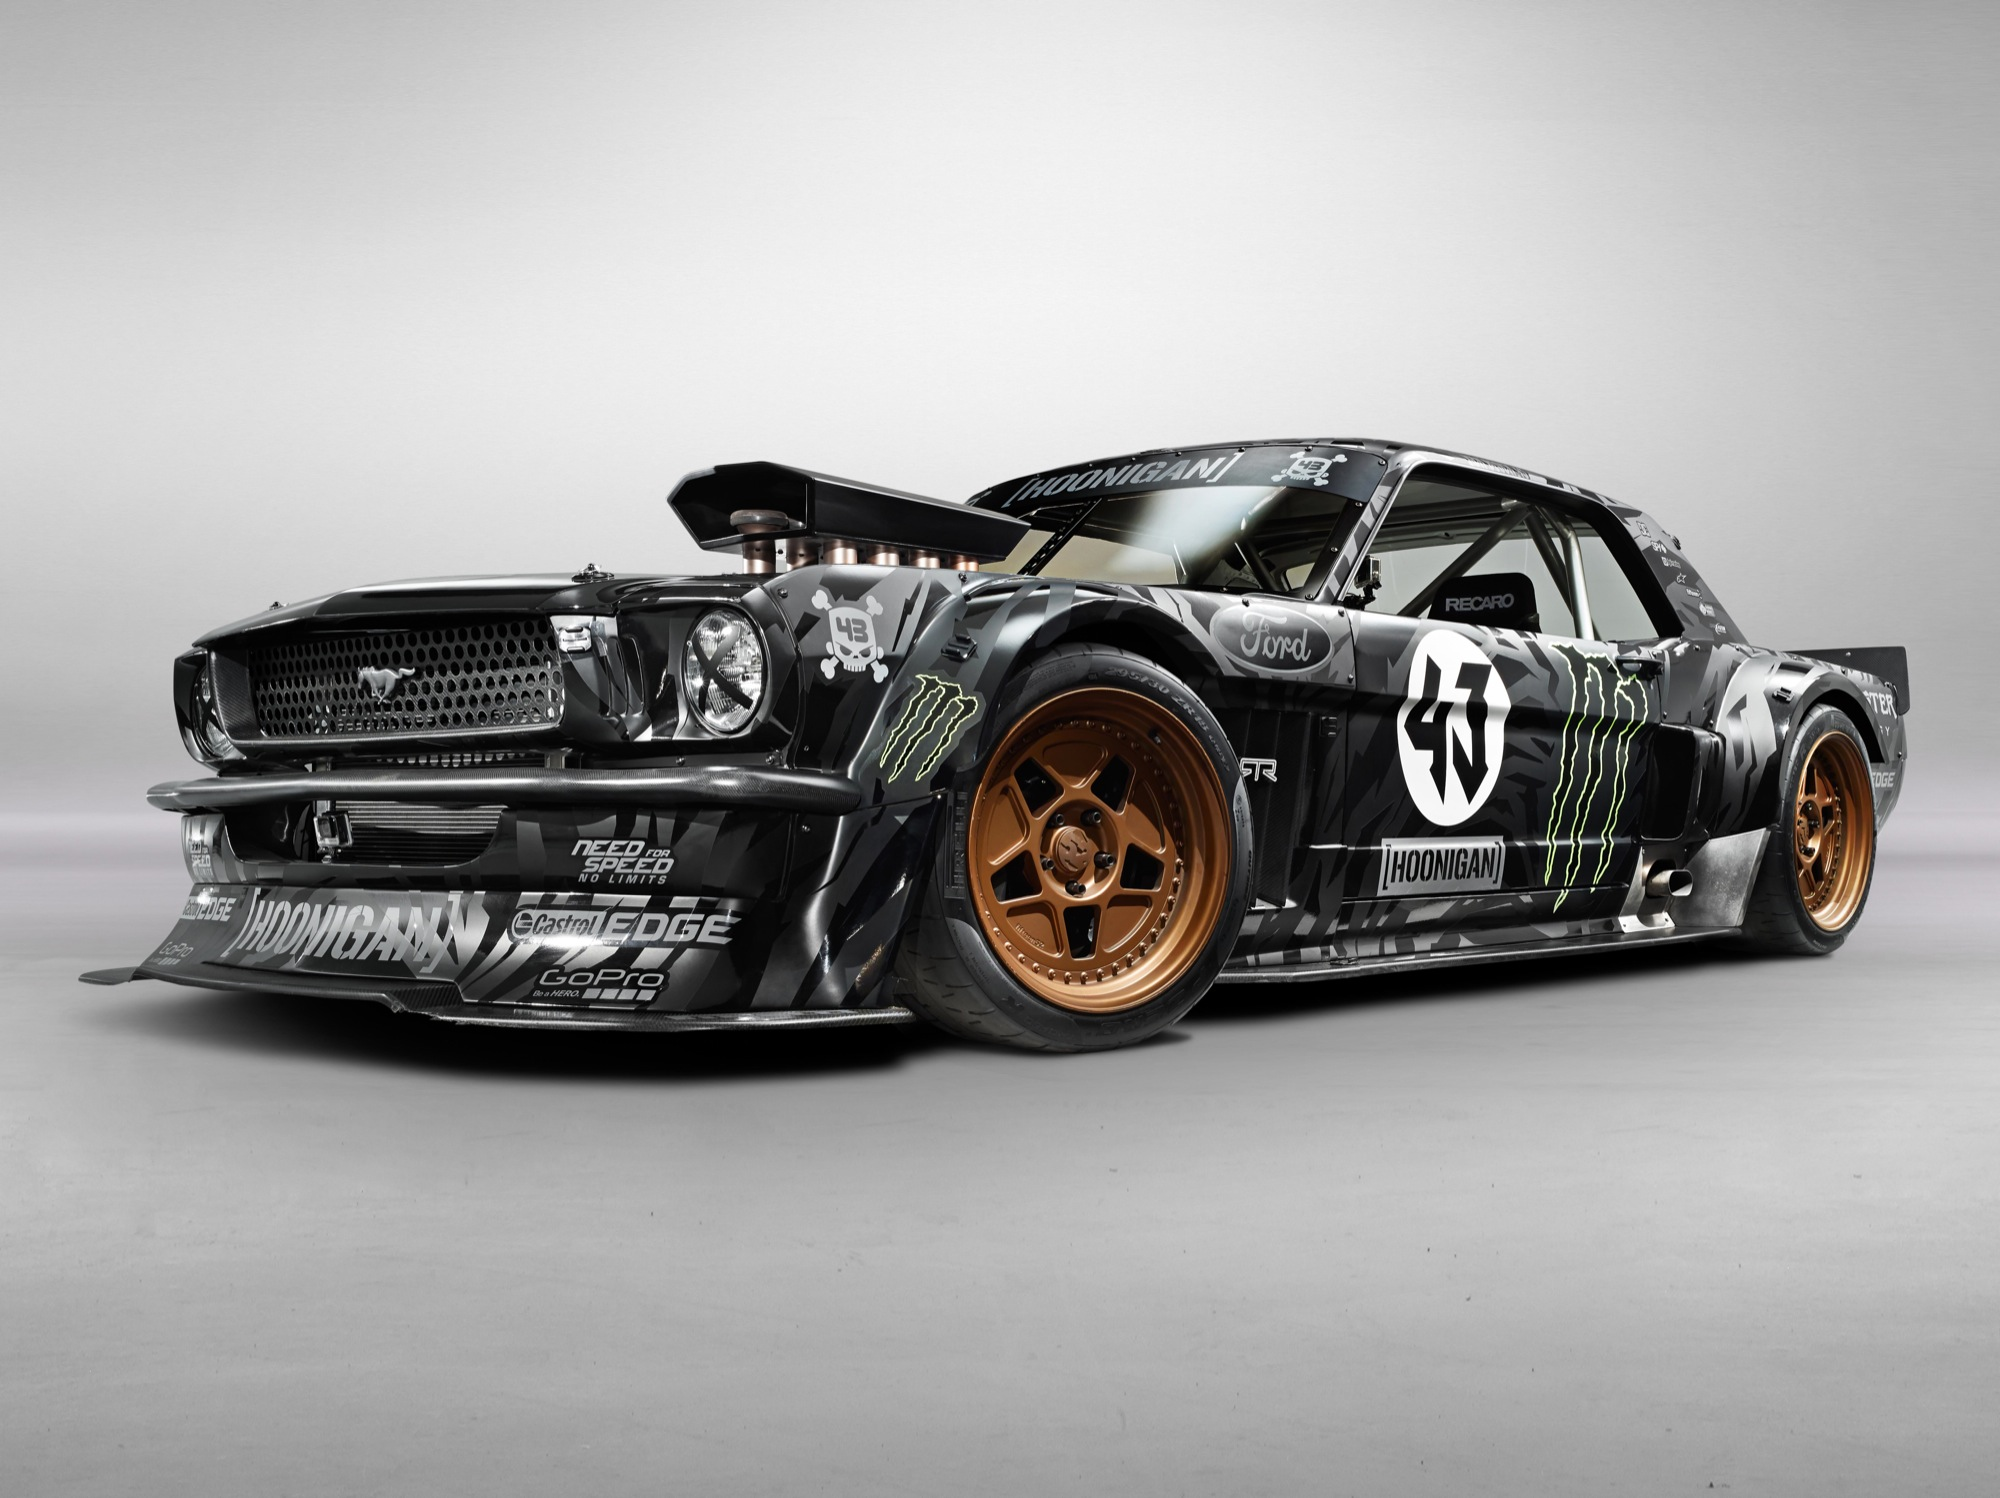 ken block gymkhana 7 hoonicorn ford mustang rtr. Black Bedroom Furniture Sets. Home Design Ideas